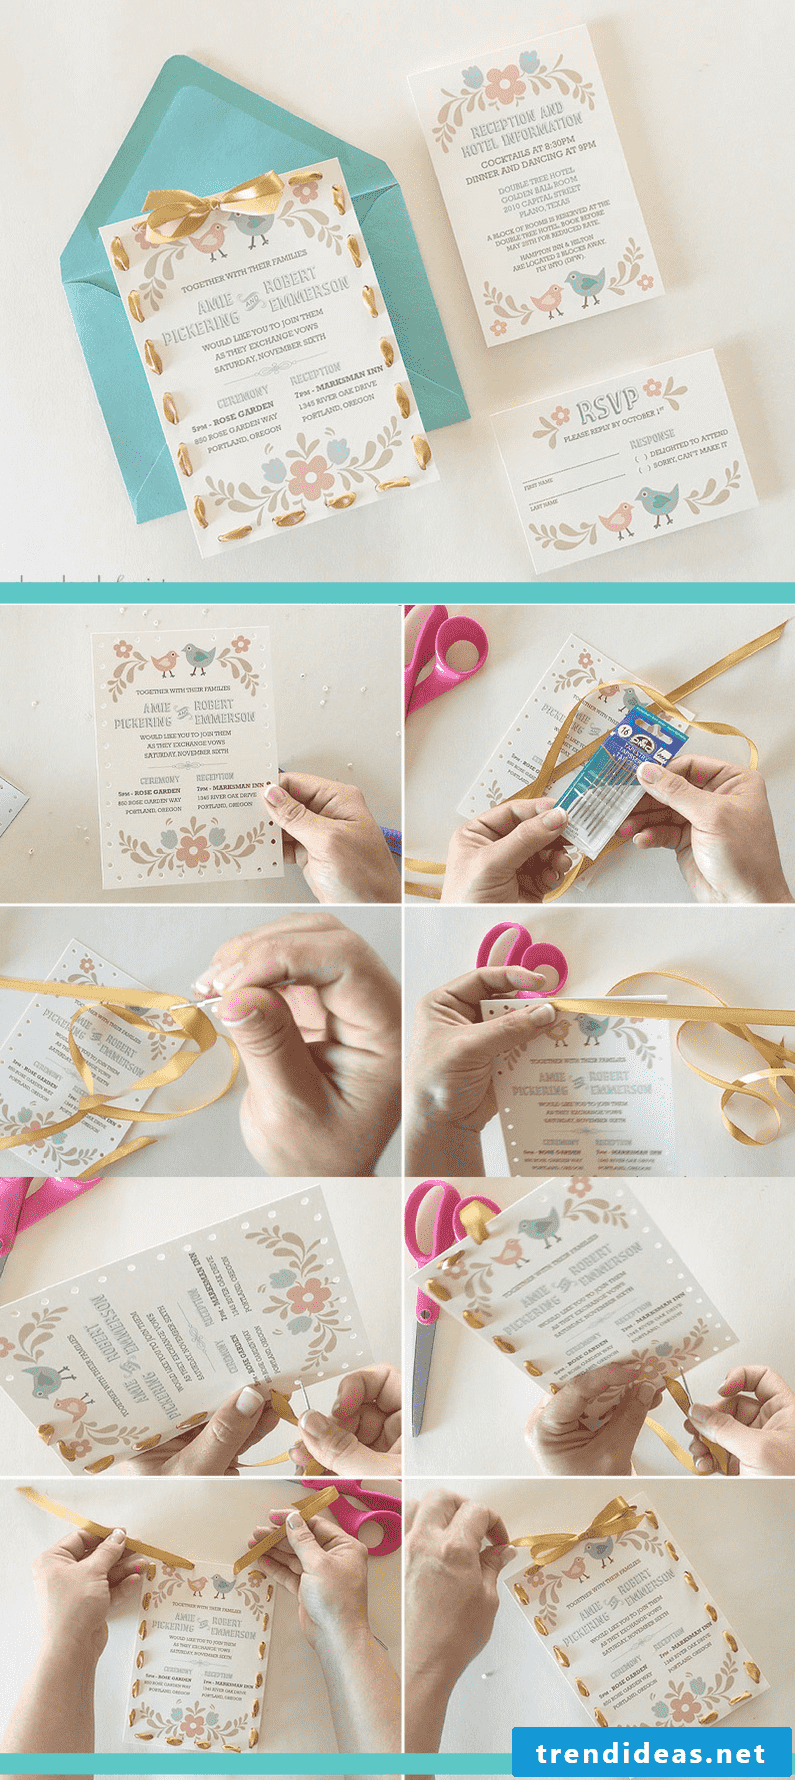 DIY idea for wedding card: Give the wedding card the finishing touch with a beautiful ribbon